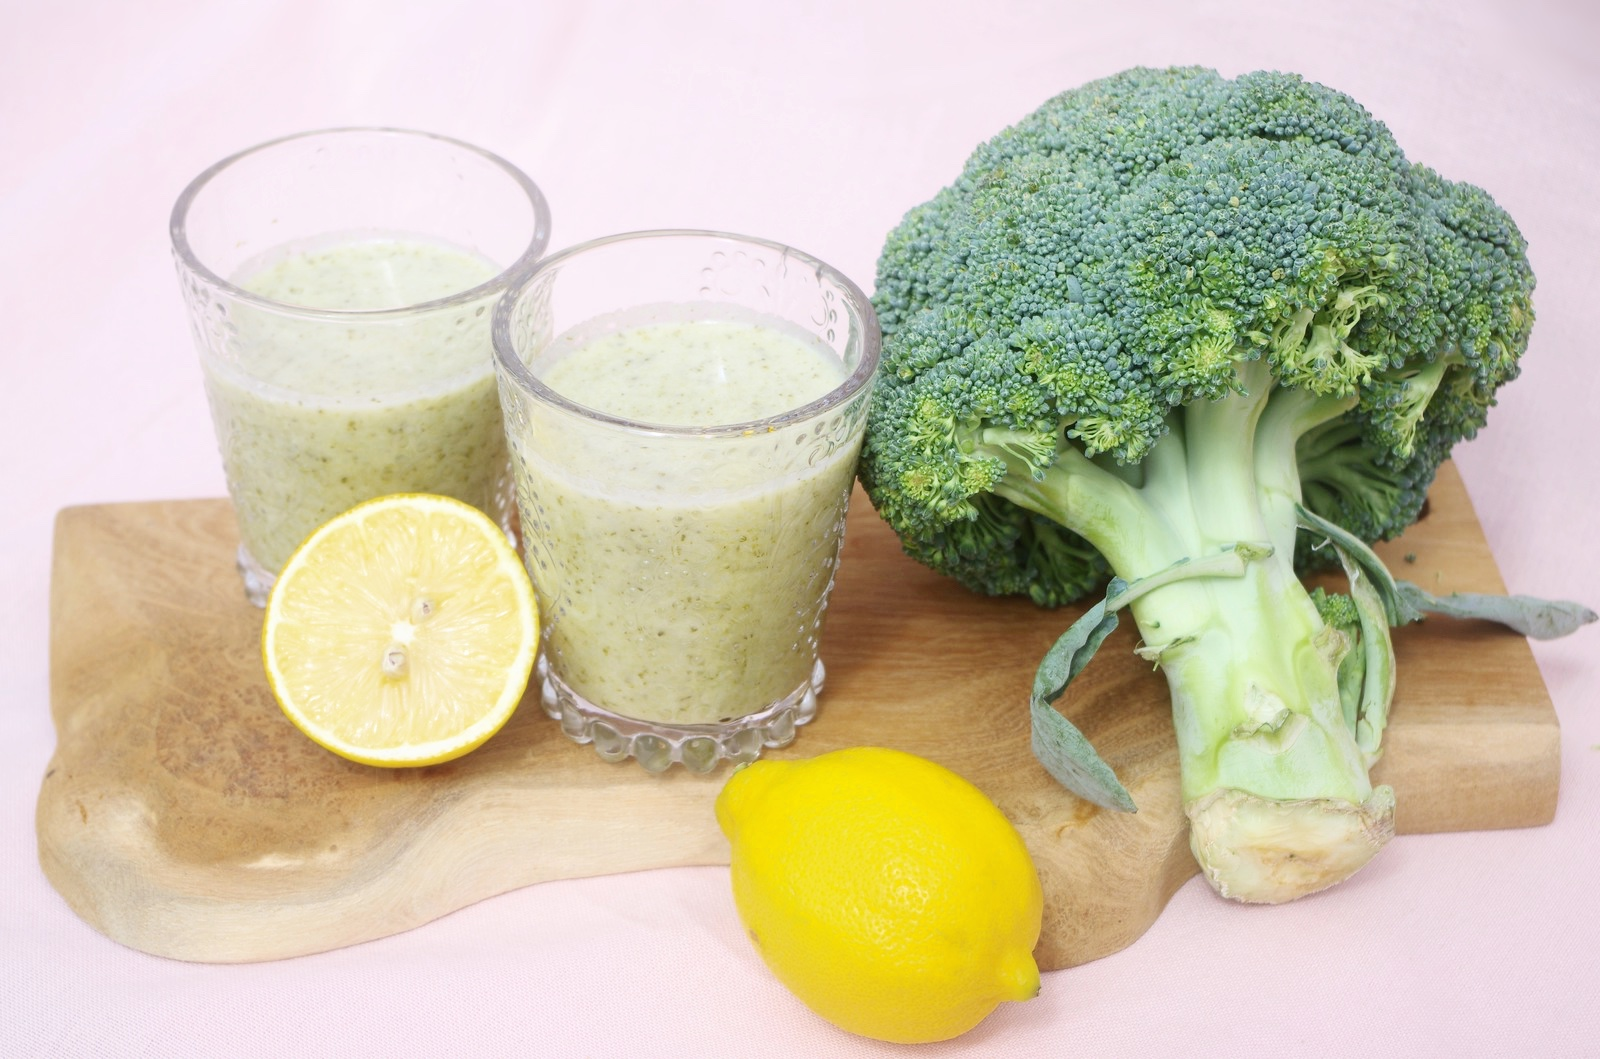 BROCCOLI DETOXSOEP, SUPER GEZOND!